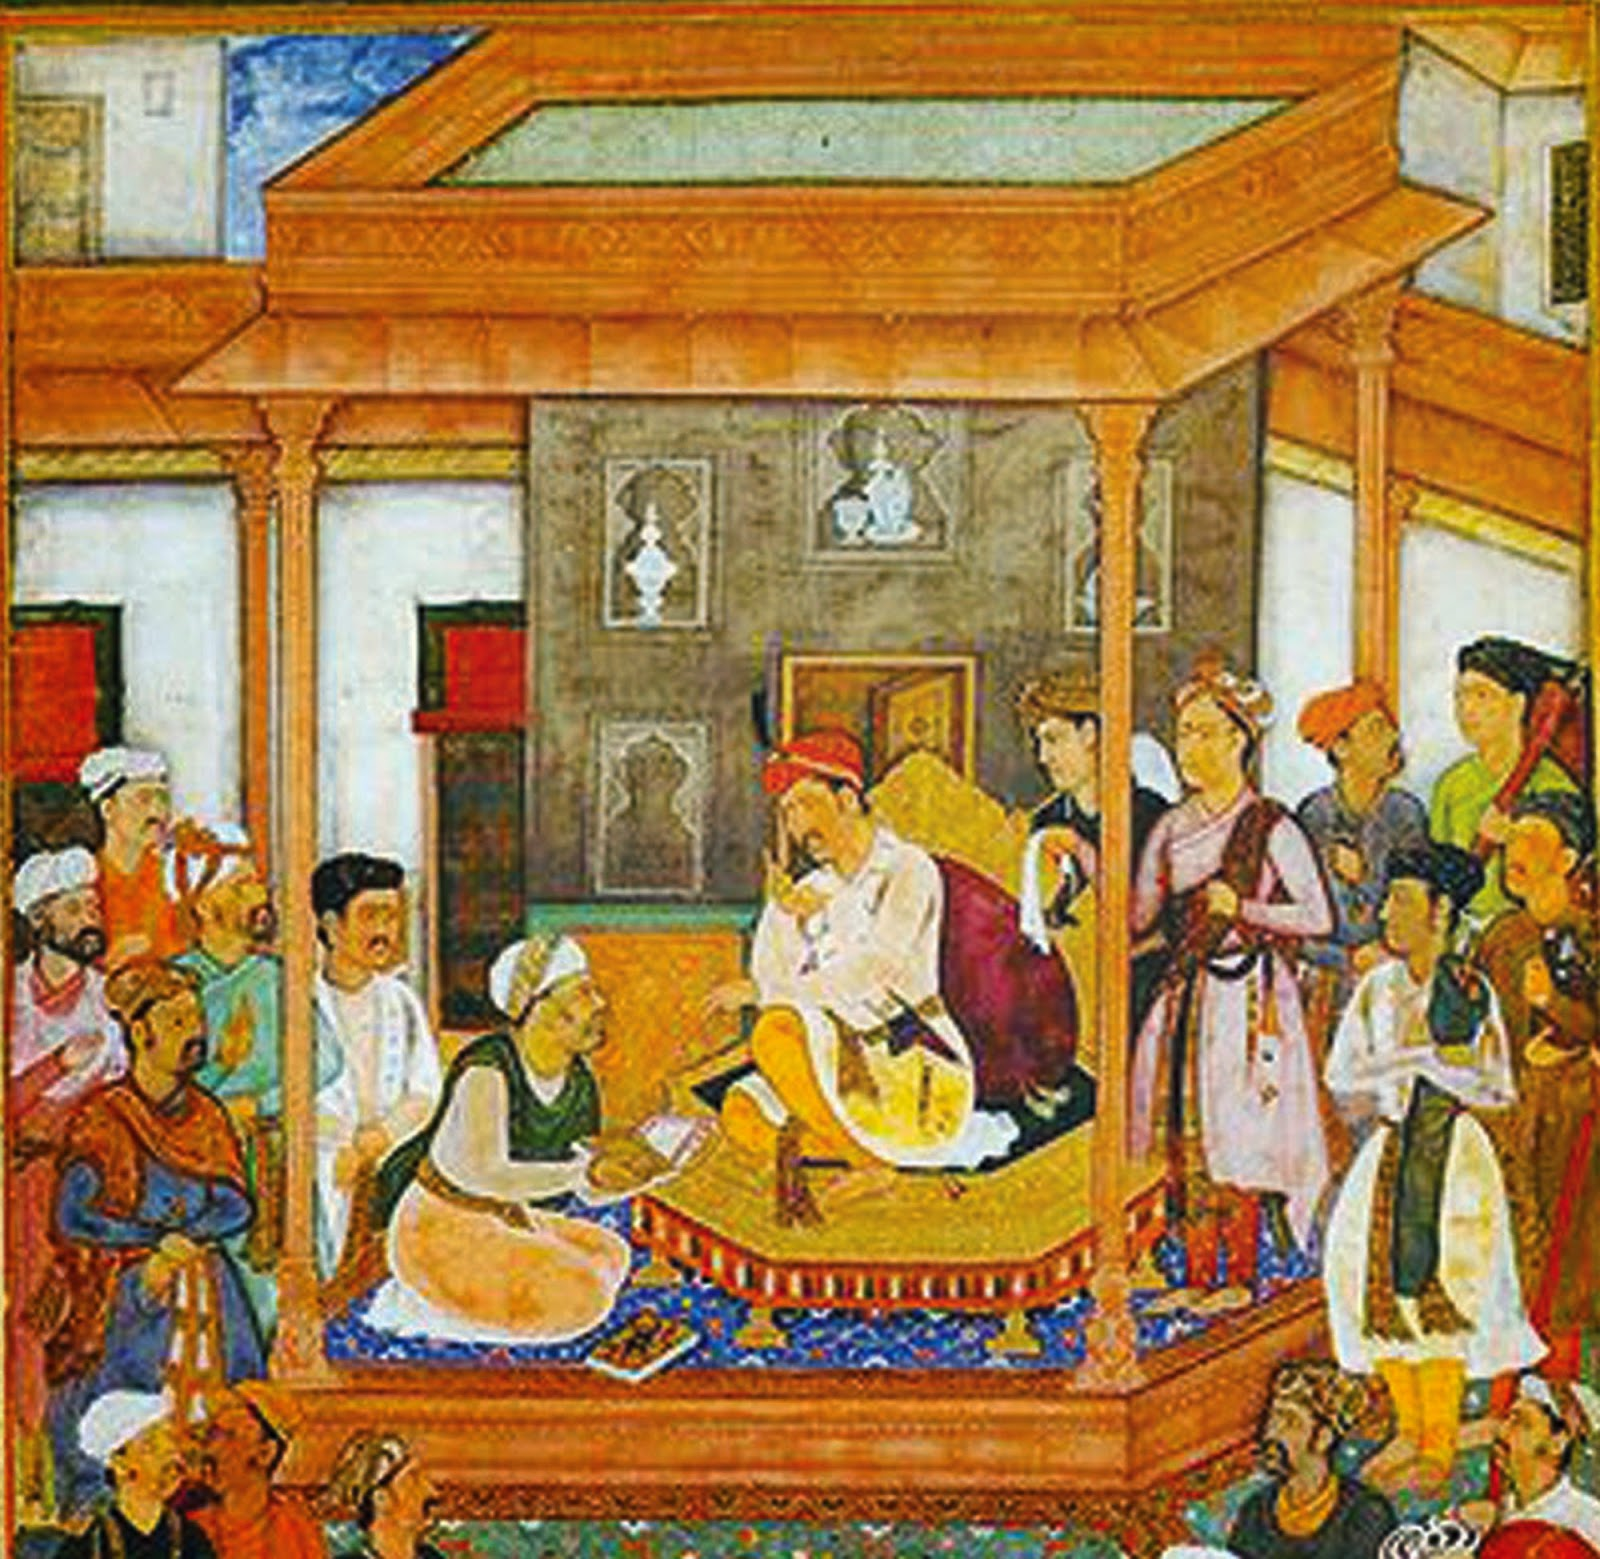 shams i bala and the historical shambhala kingdom akbar the great abulfazlpresentingakbarnama1 jpg